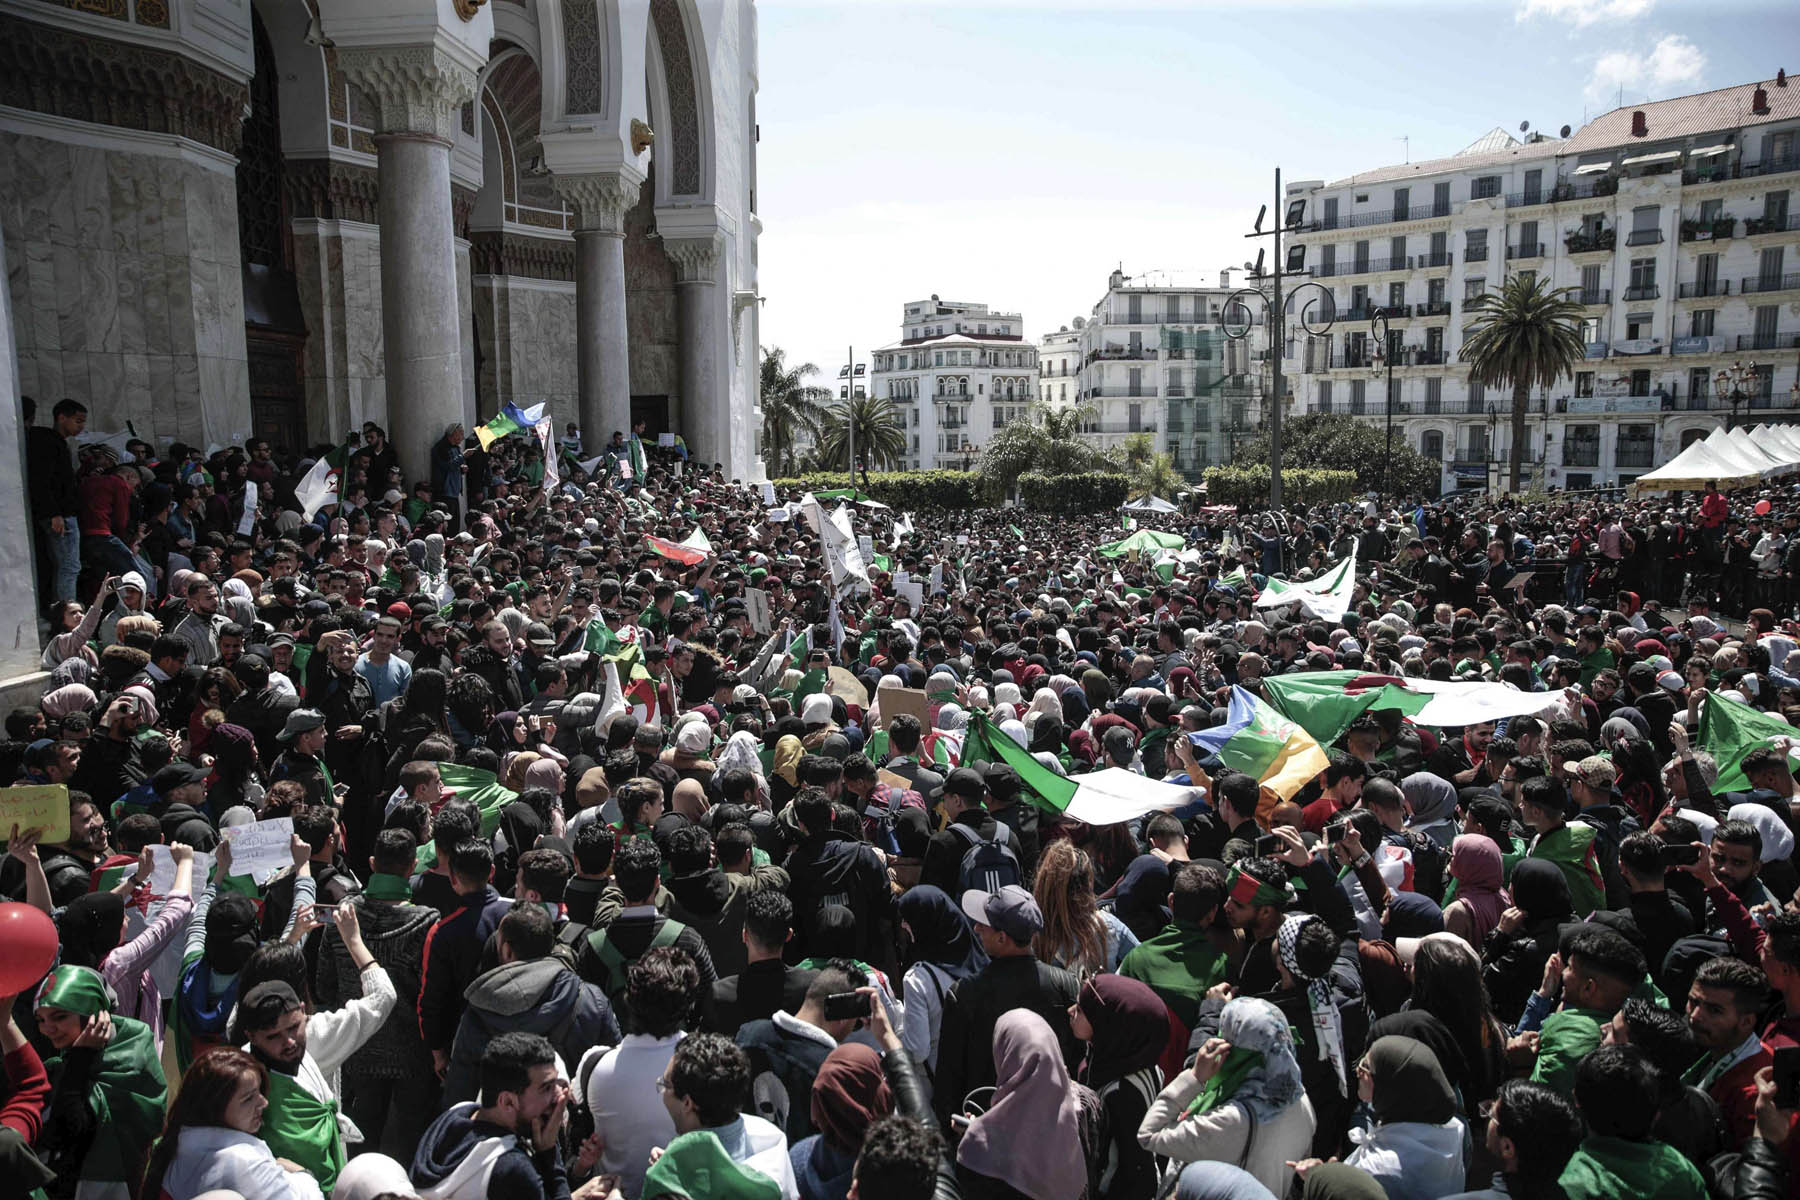 Students wave flags and chant slogans during a demonstration in Algiers, Algeria, Tuesday, April 9, 2019. (AP)